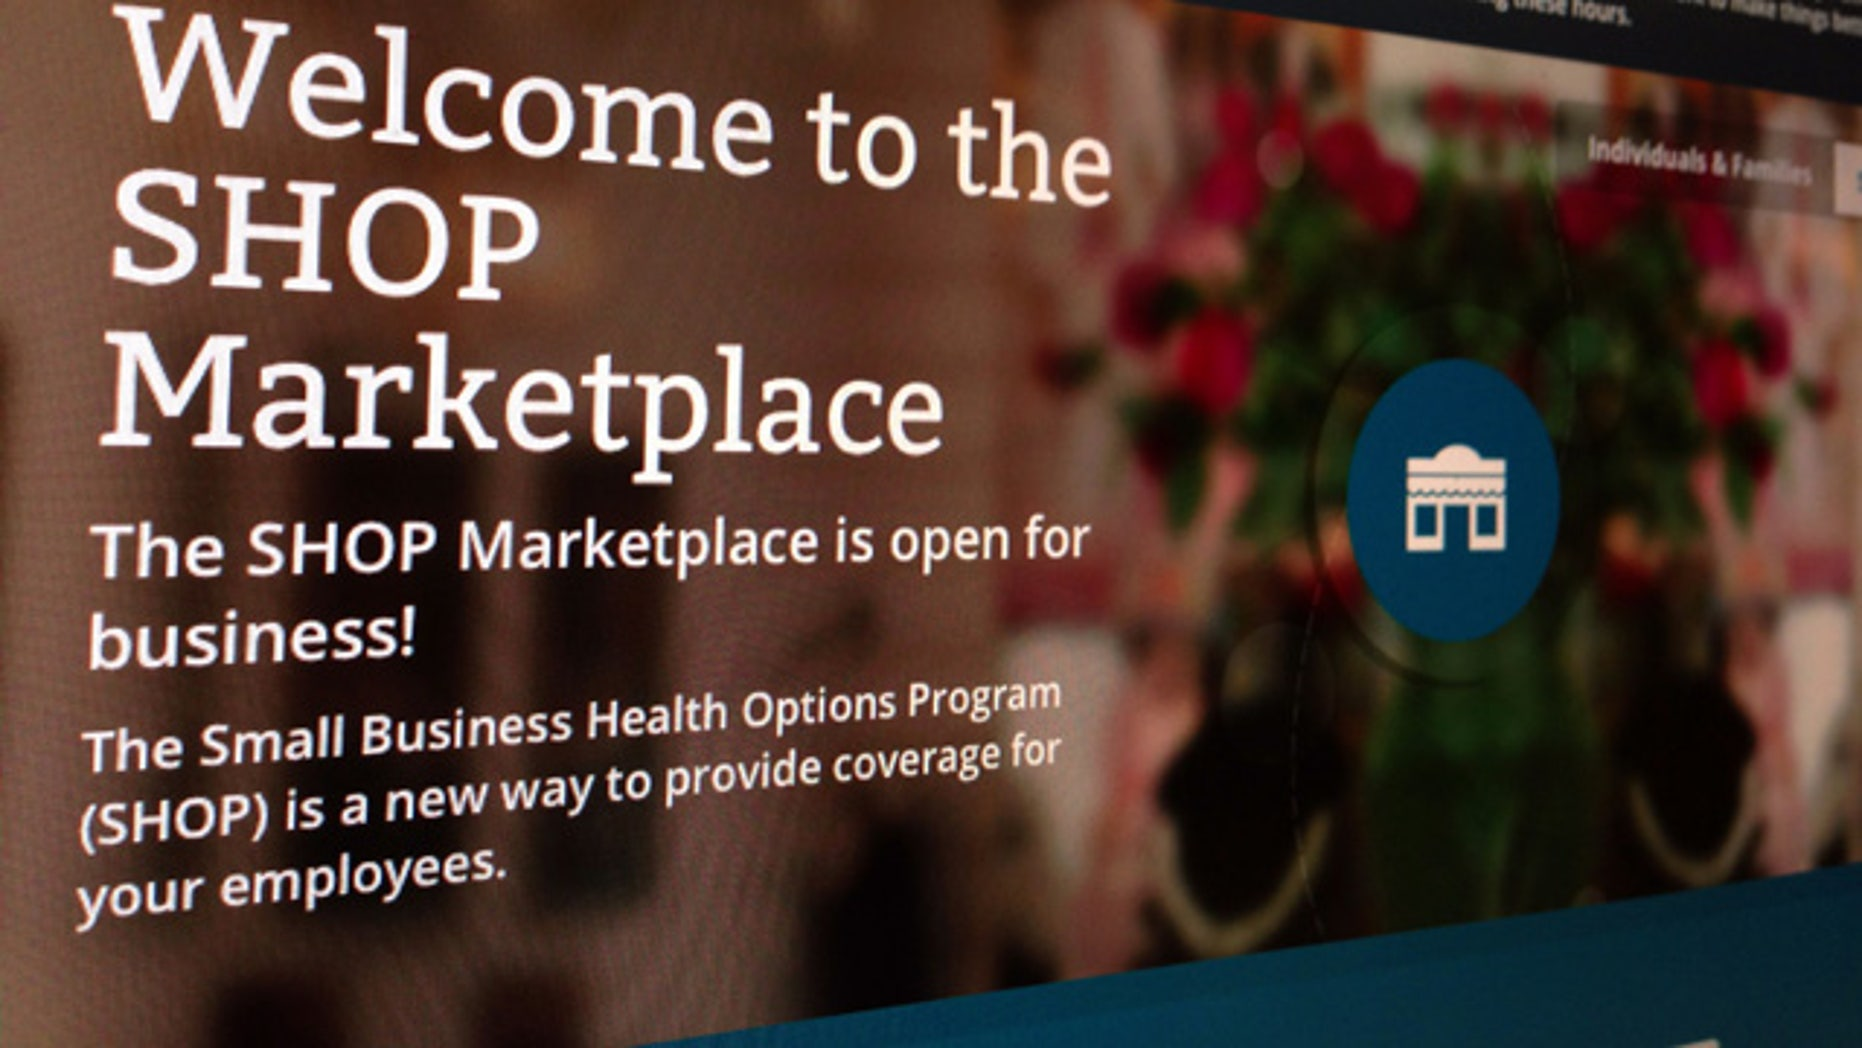 FILE - This Wednesday, Nov. 27, 2013, file photo, taken in Washington, shows part of the HealthCare.gov website page featuring information about the SHOP Marketplace. (AP Photo/Jon Elswick, File)